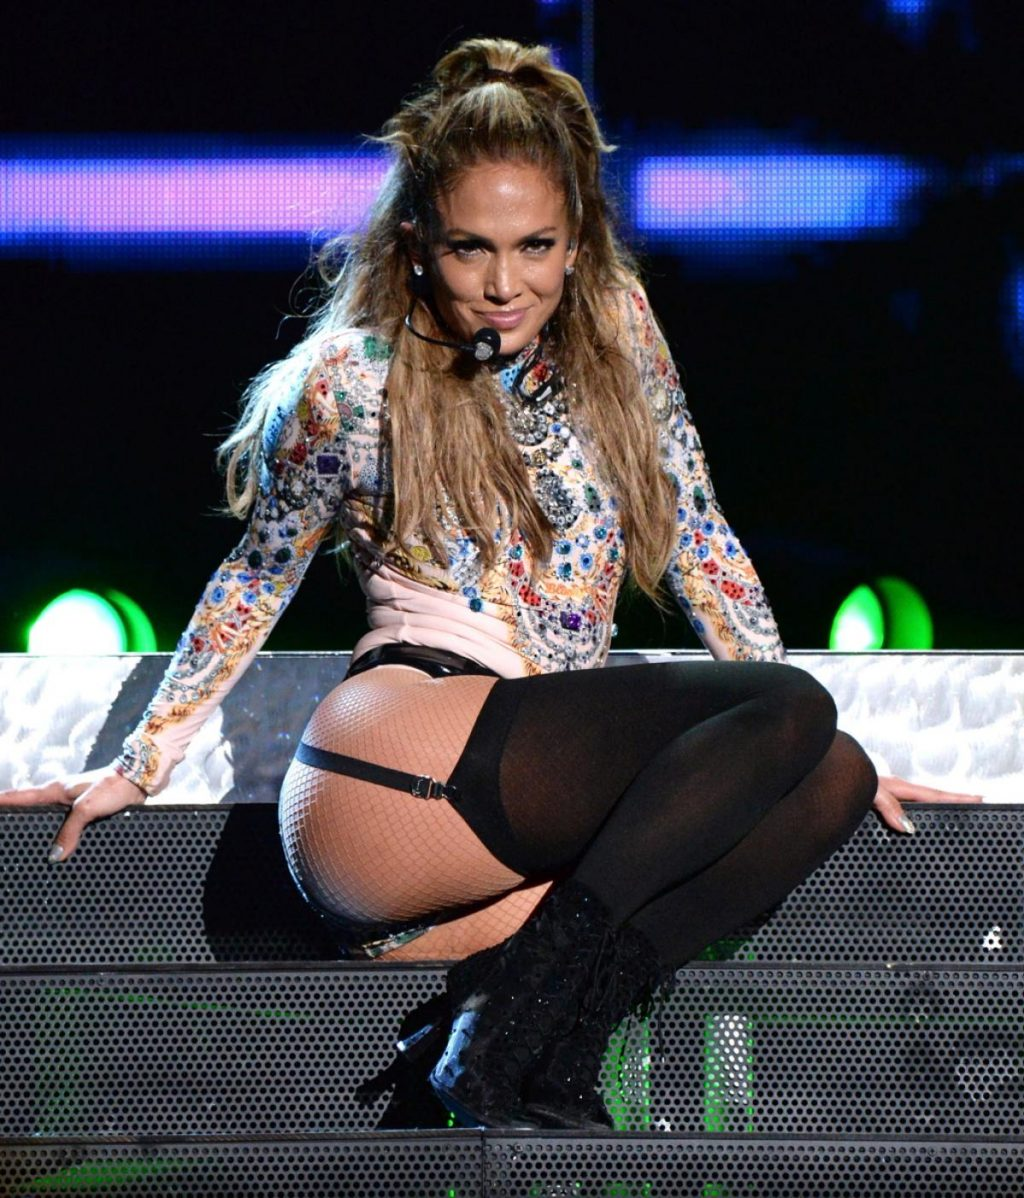 jennifer lopez on stage concert